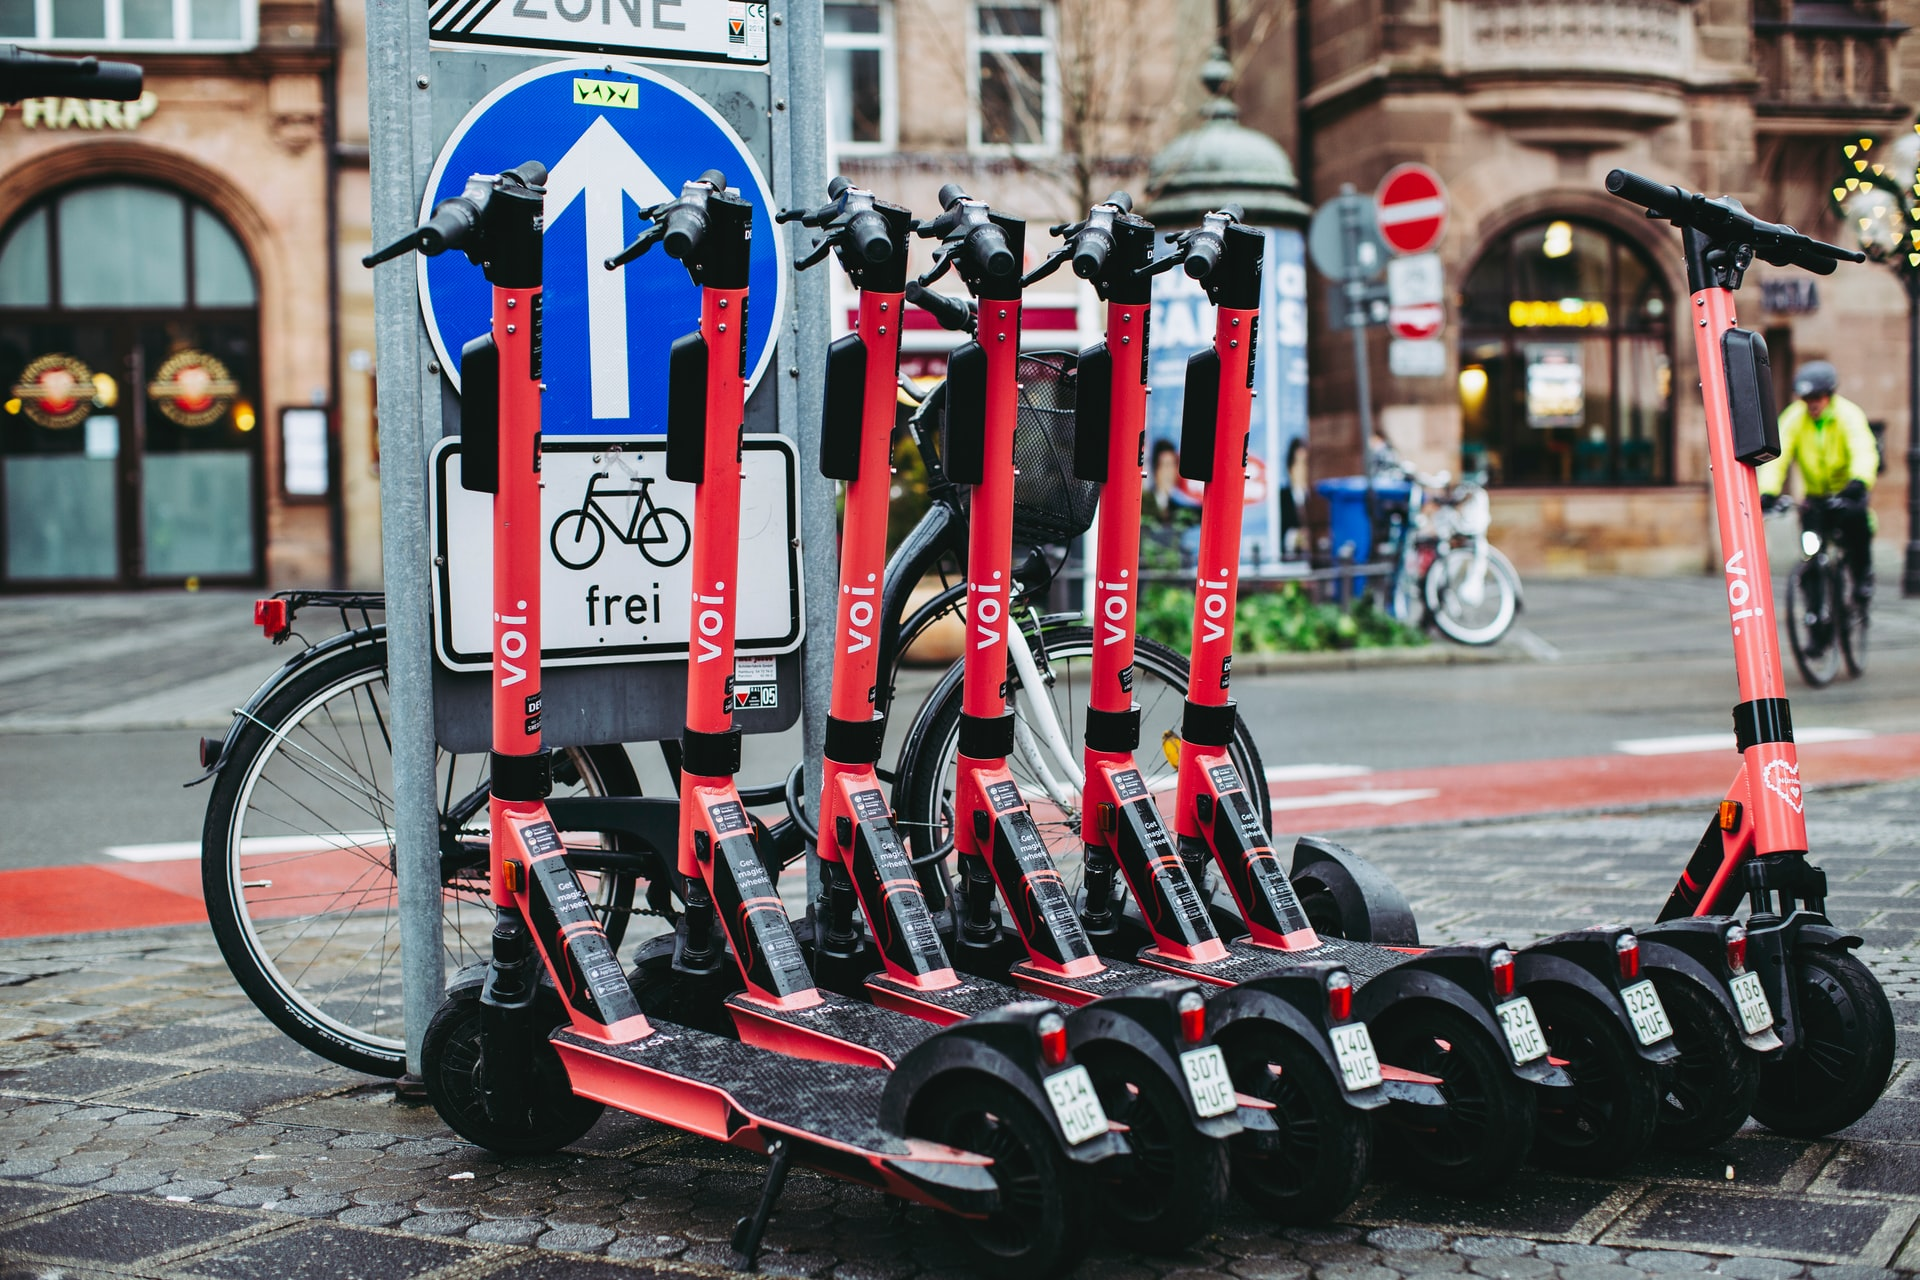 E-scooters in one line.